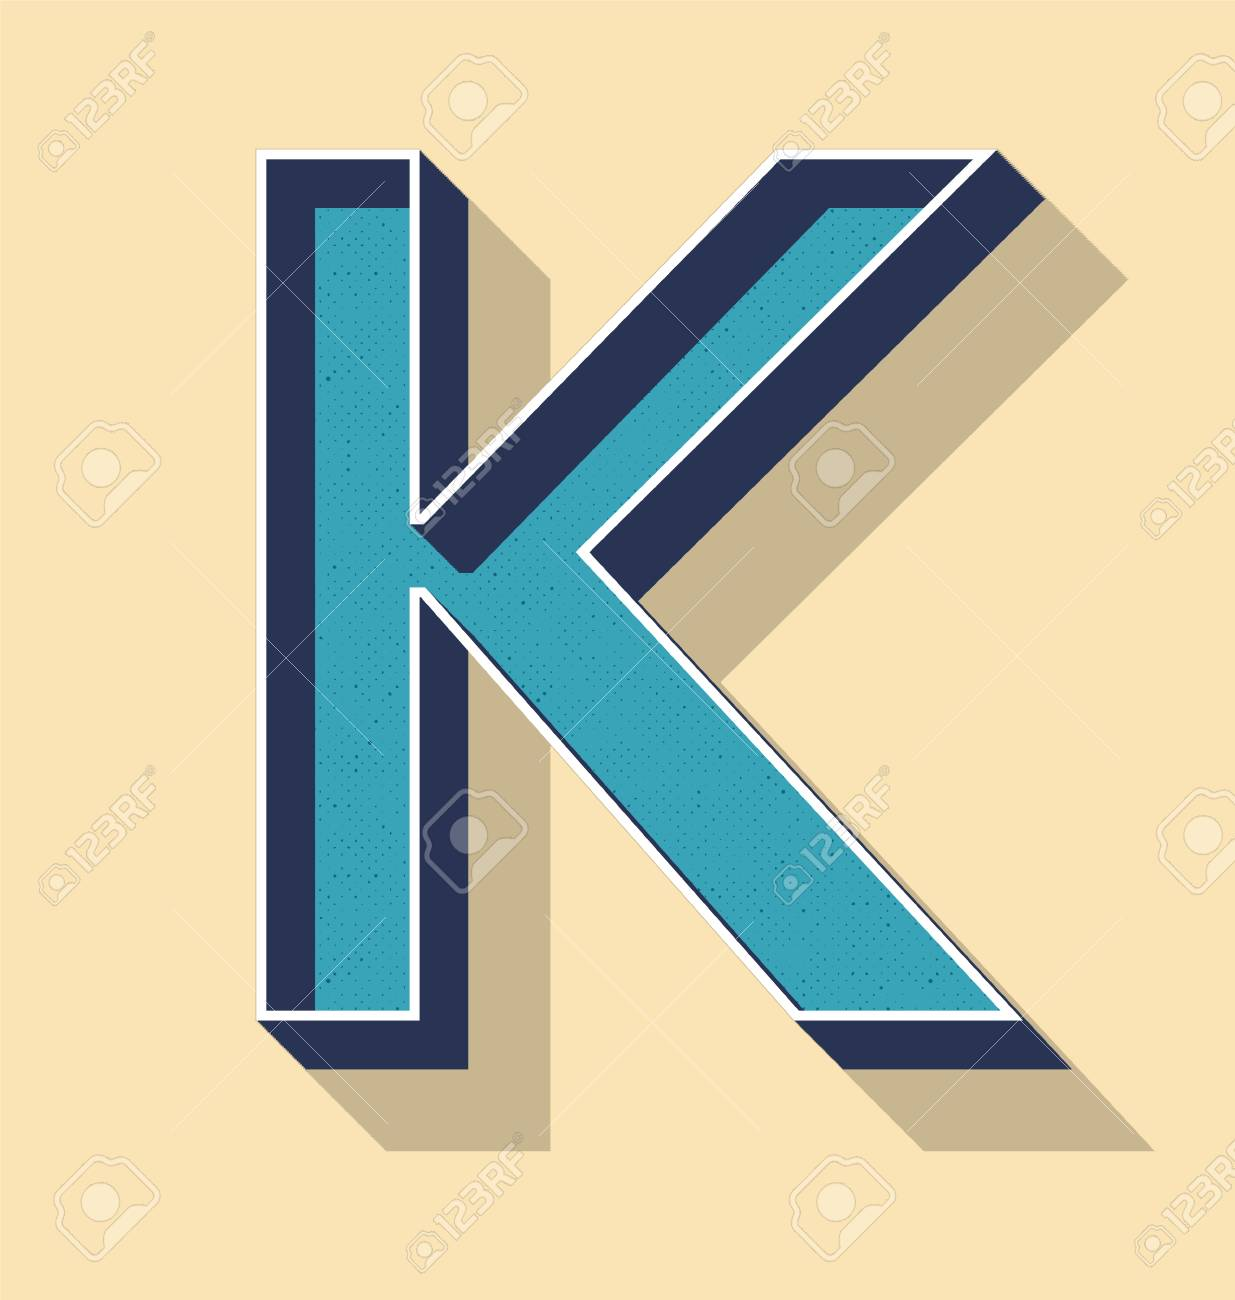 3d letter k retro vector text style, fonts concept royalty free